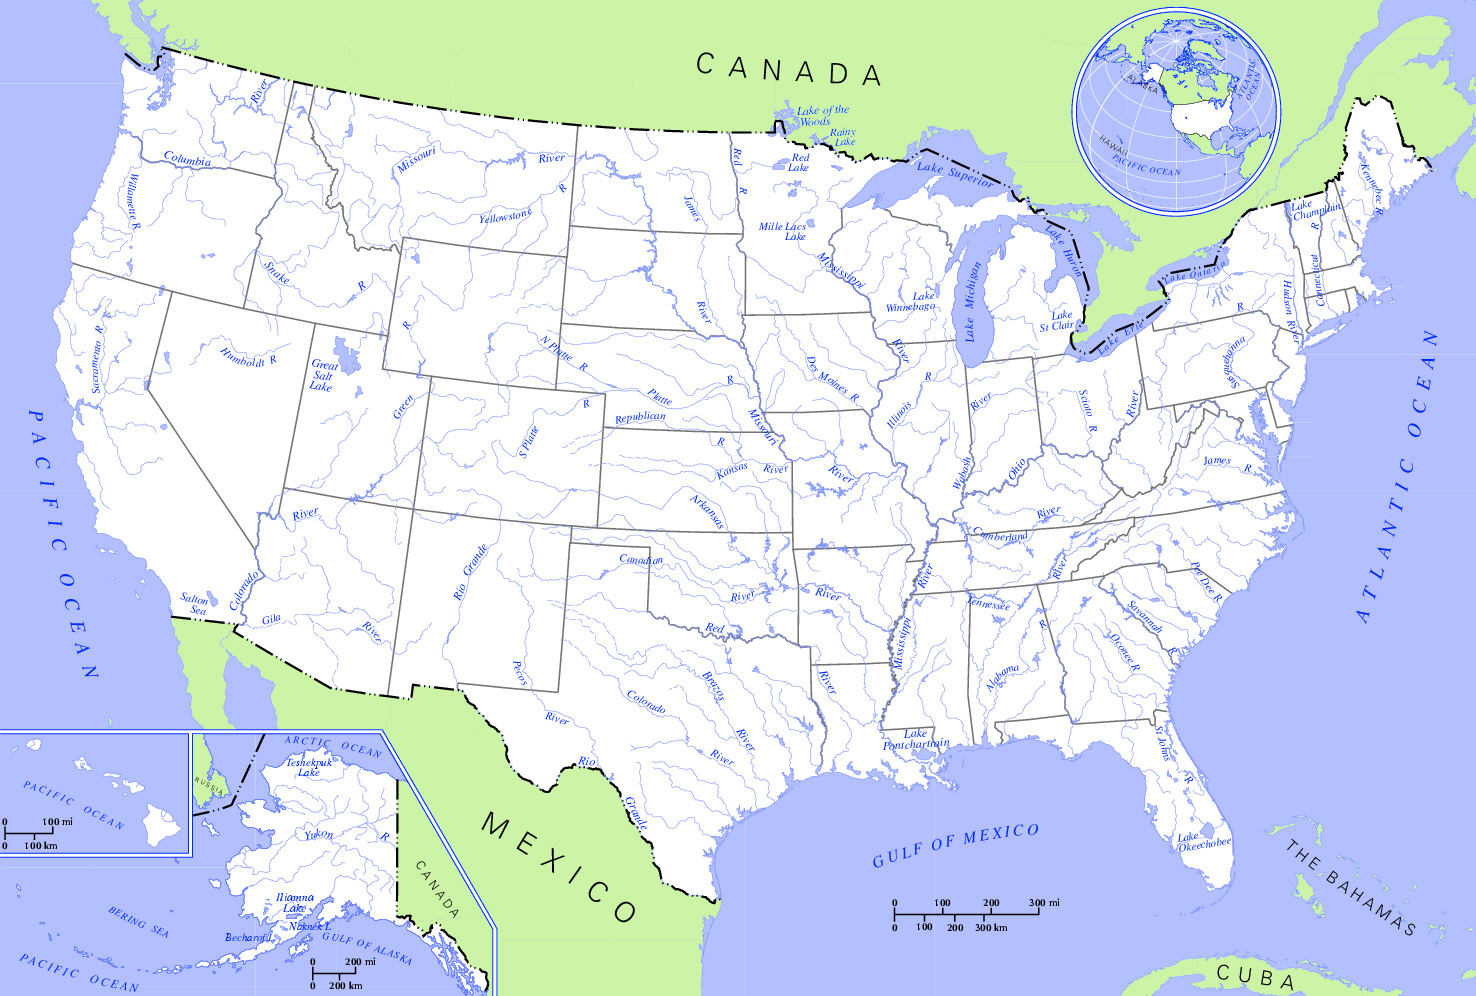 FileUS Map Rivers And Lakesjpg Wikimedia Commons - Us map with rivers